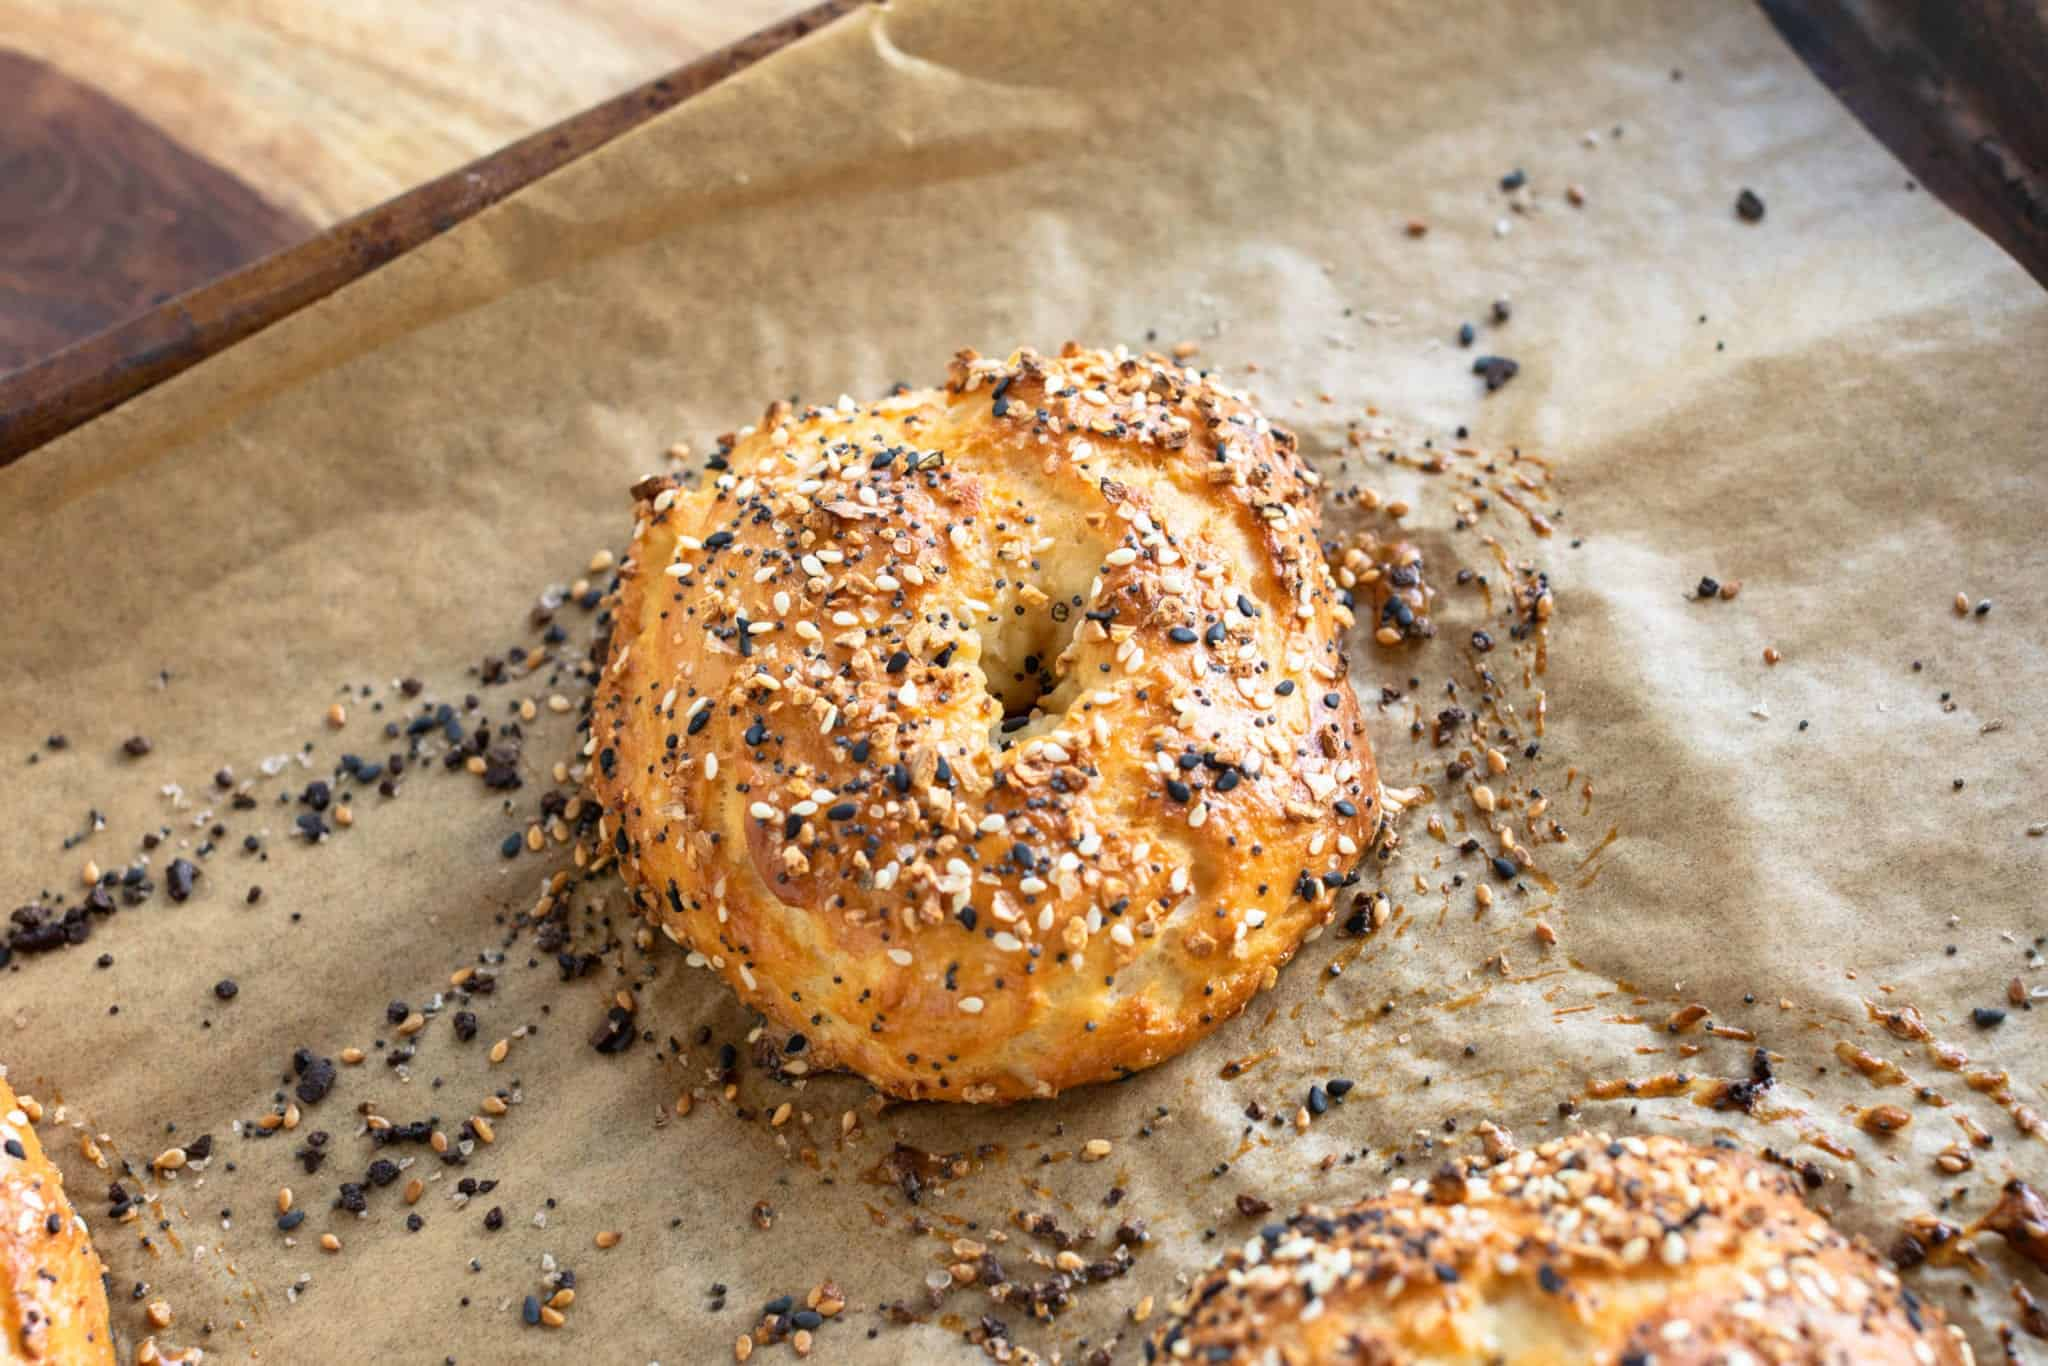 Easy homemade everything bagel golden brown after baking and fresh out of the oven cooling off #breakfast #easyrecipes #homemadebagels #everythingbagels #weightwatchers